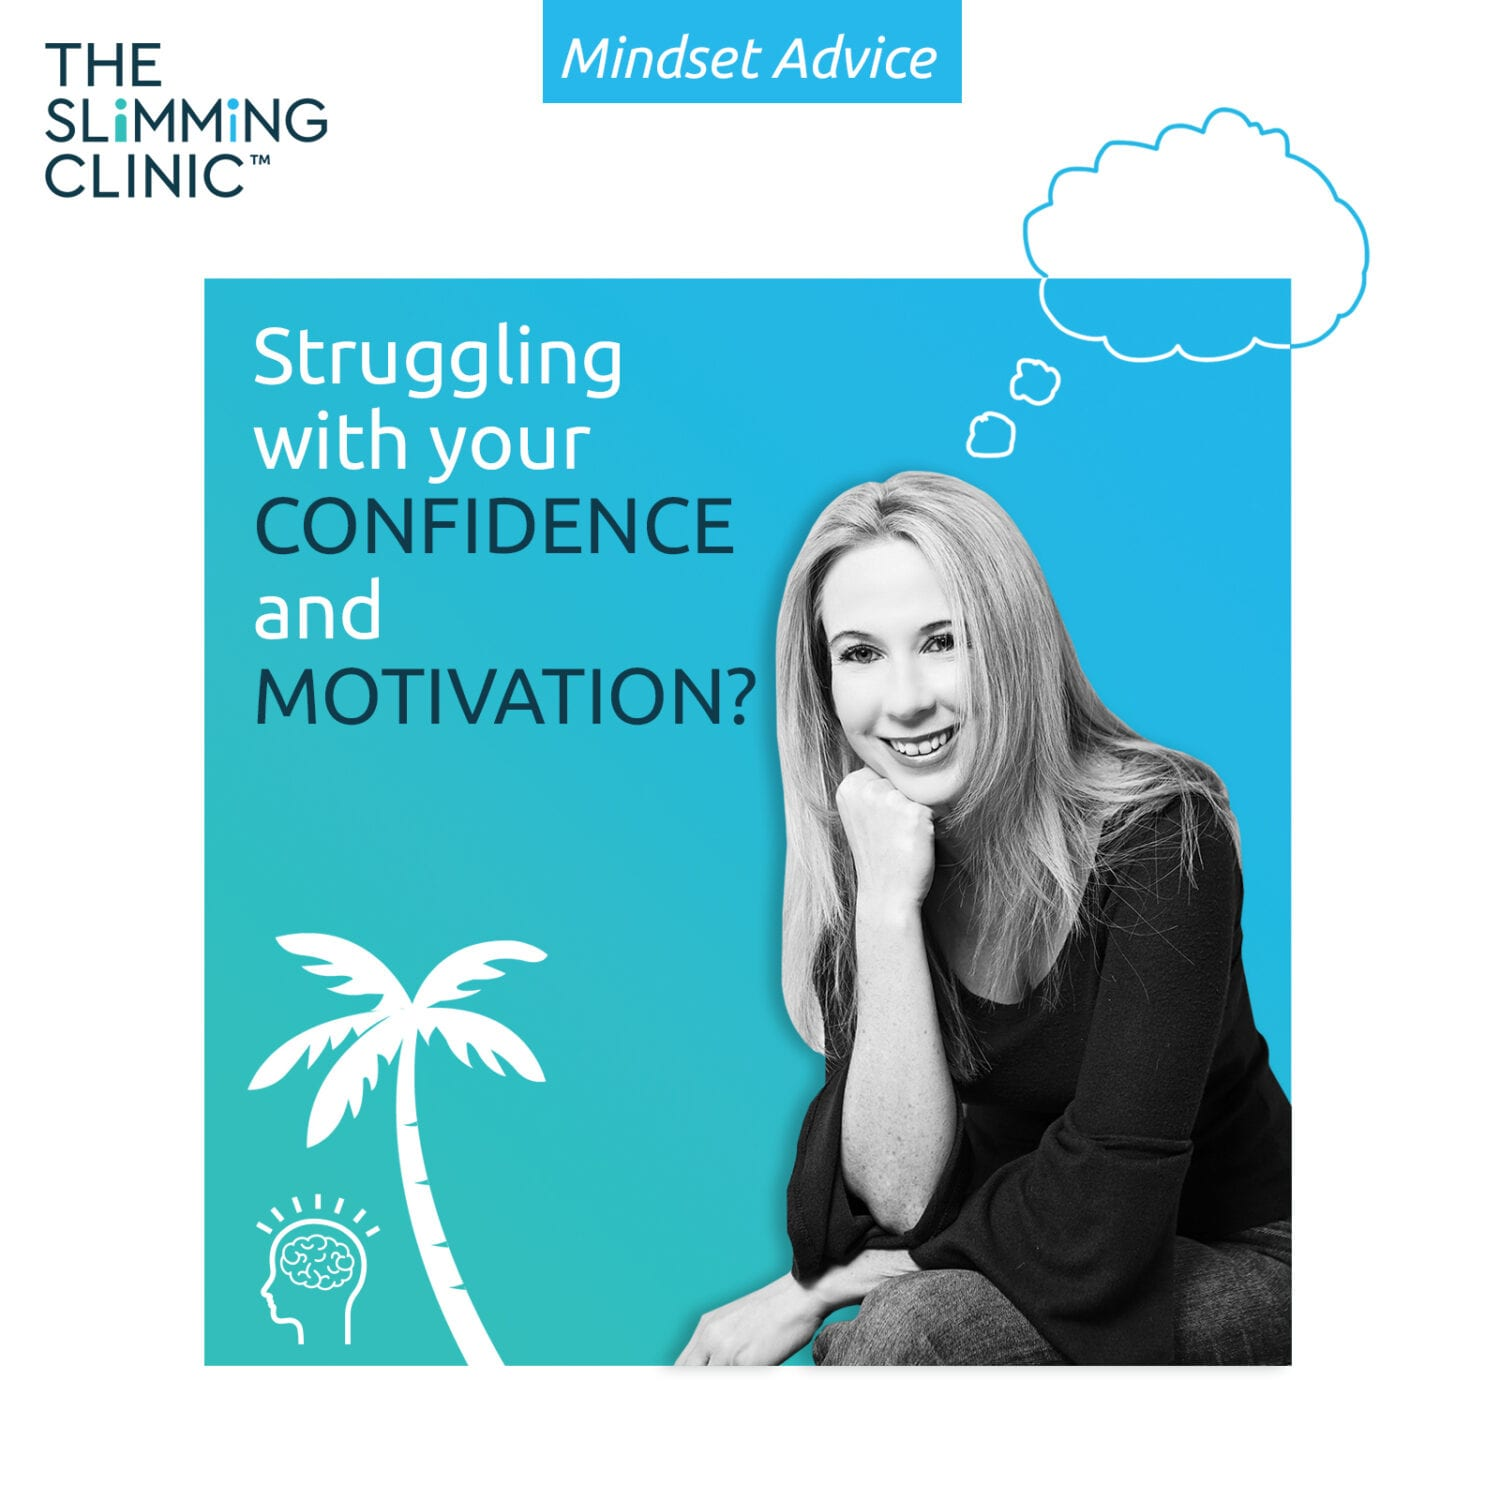 Expert Mindset Tips When You're Feeling Out Of Control